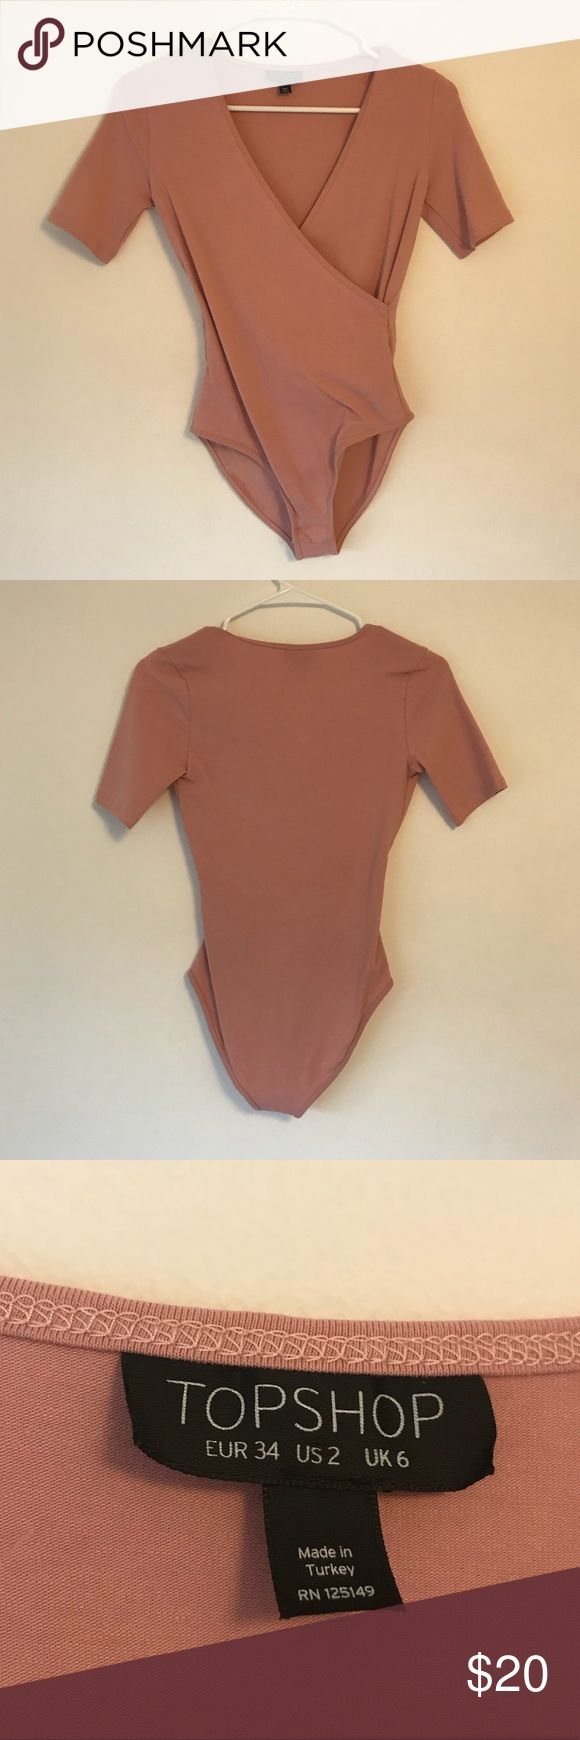 Ballet Pink Topshop Bodysuit Snap Closure Thai is in perfect condition, worn once but not my style anymore. Topshop Tops